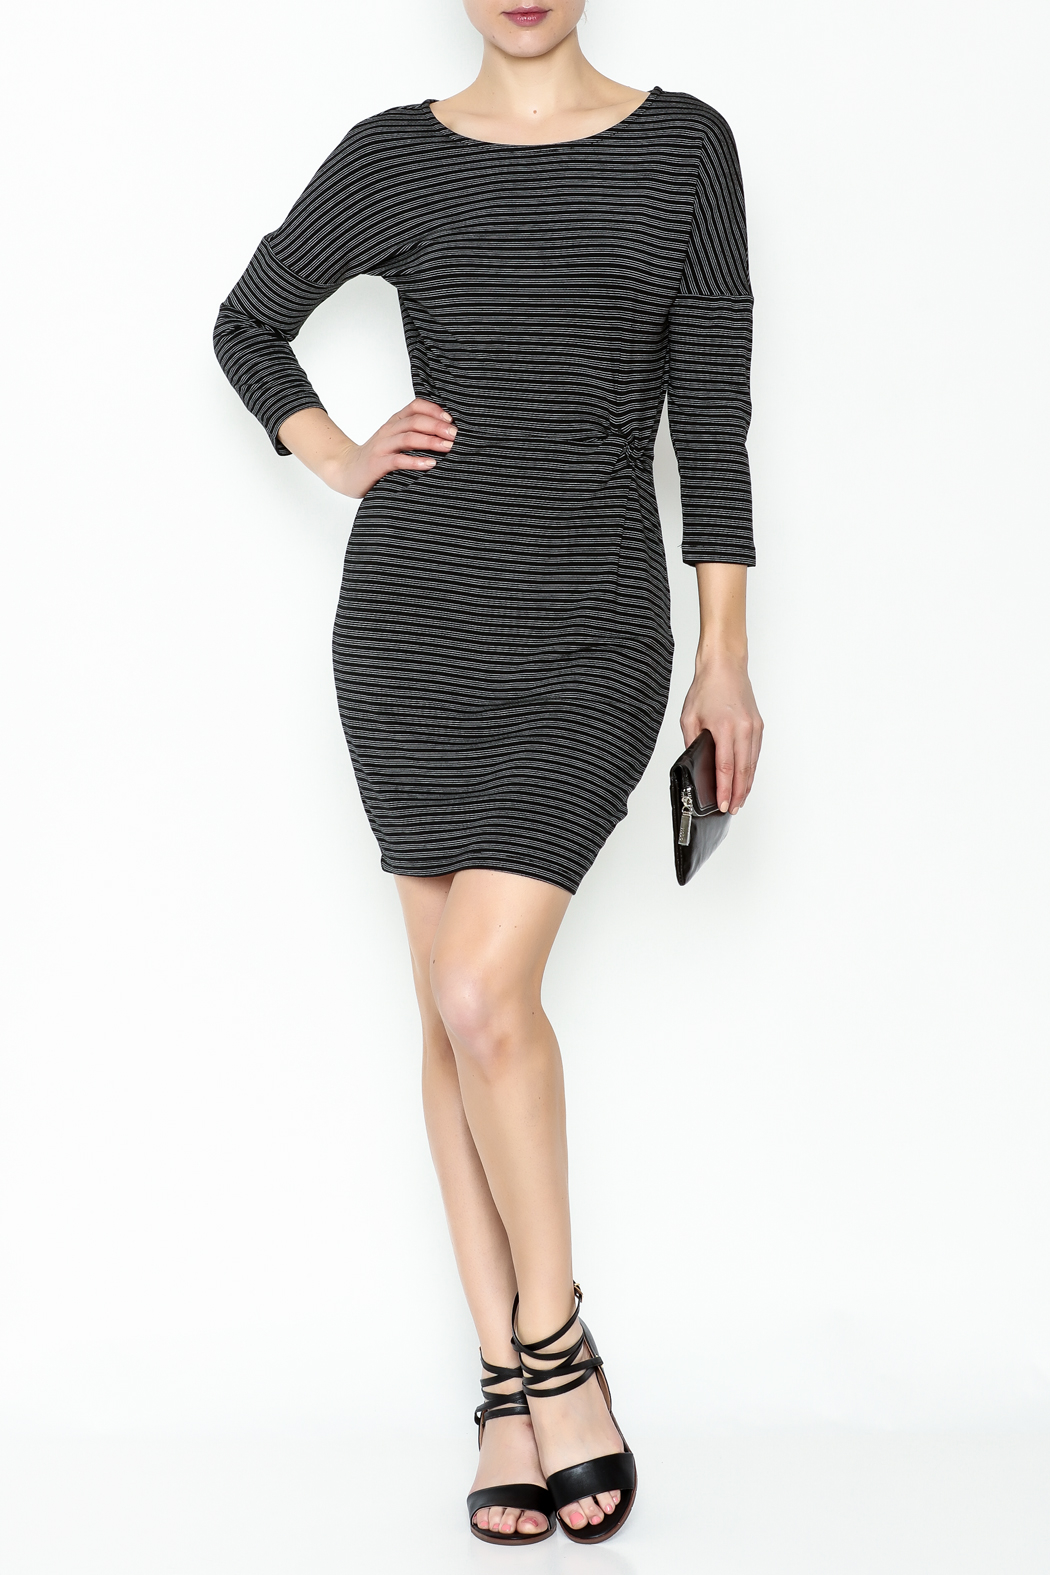 Cupcakes and Cashmere Waist Flattering Stripe Dress - Side Cropped Image